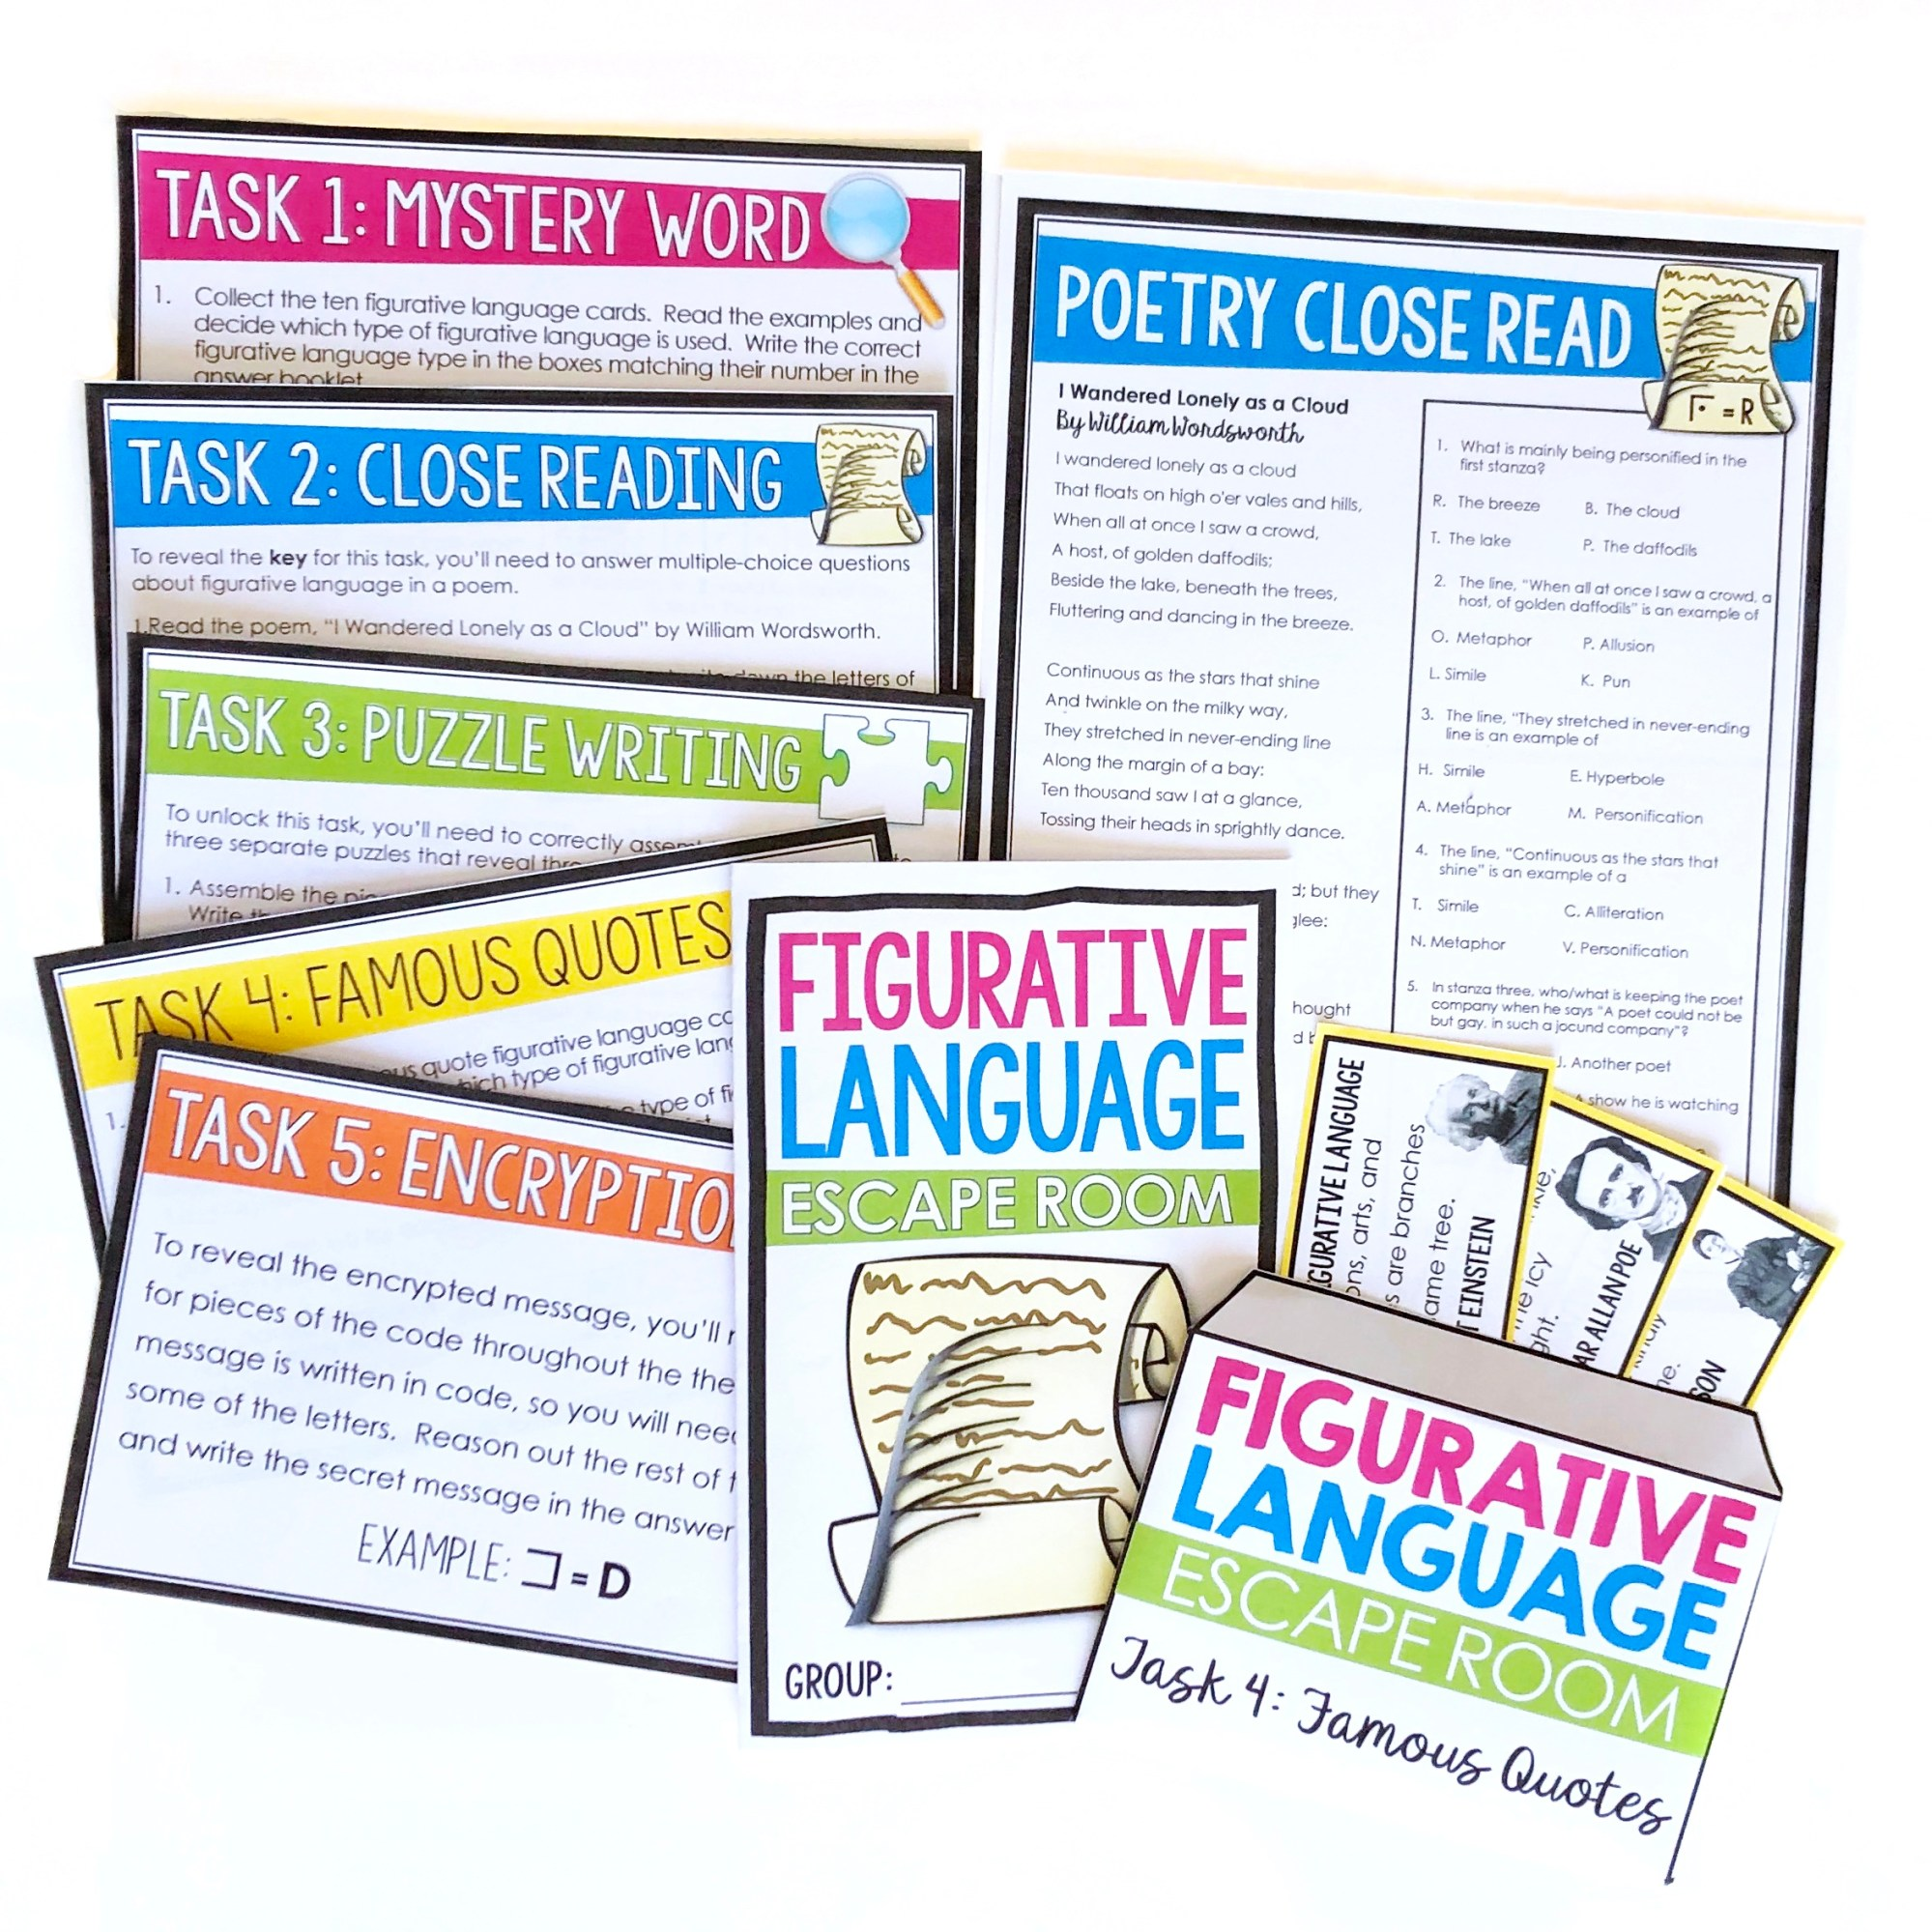 hight resolution of 8 Creative Figurative Language Activities for Review - Presto Plans